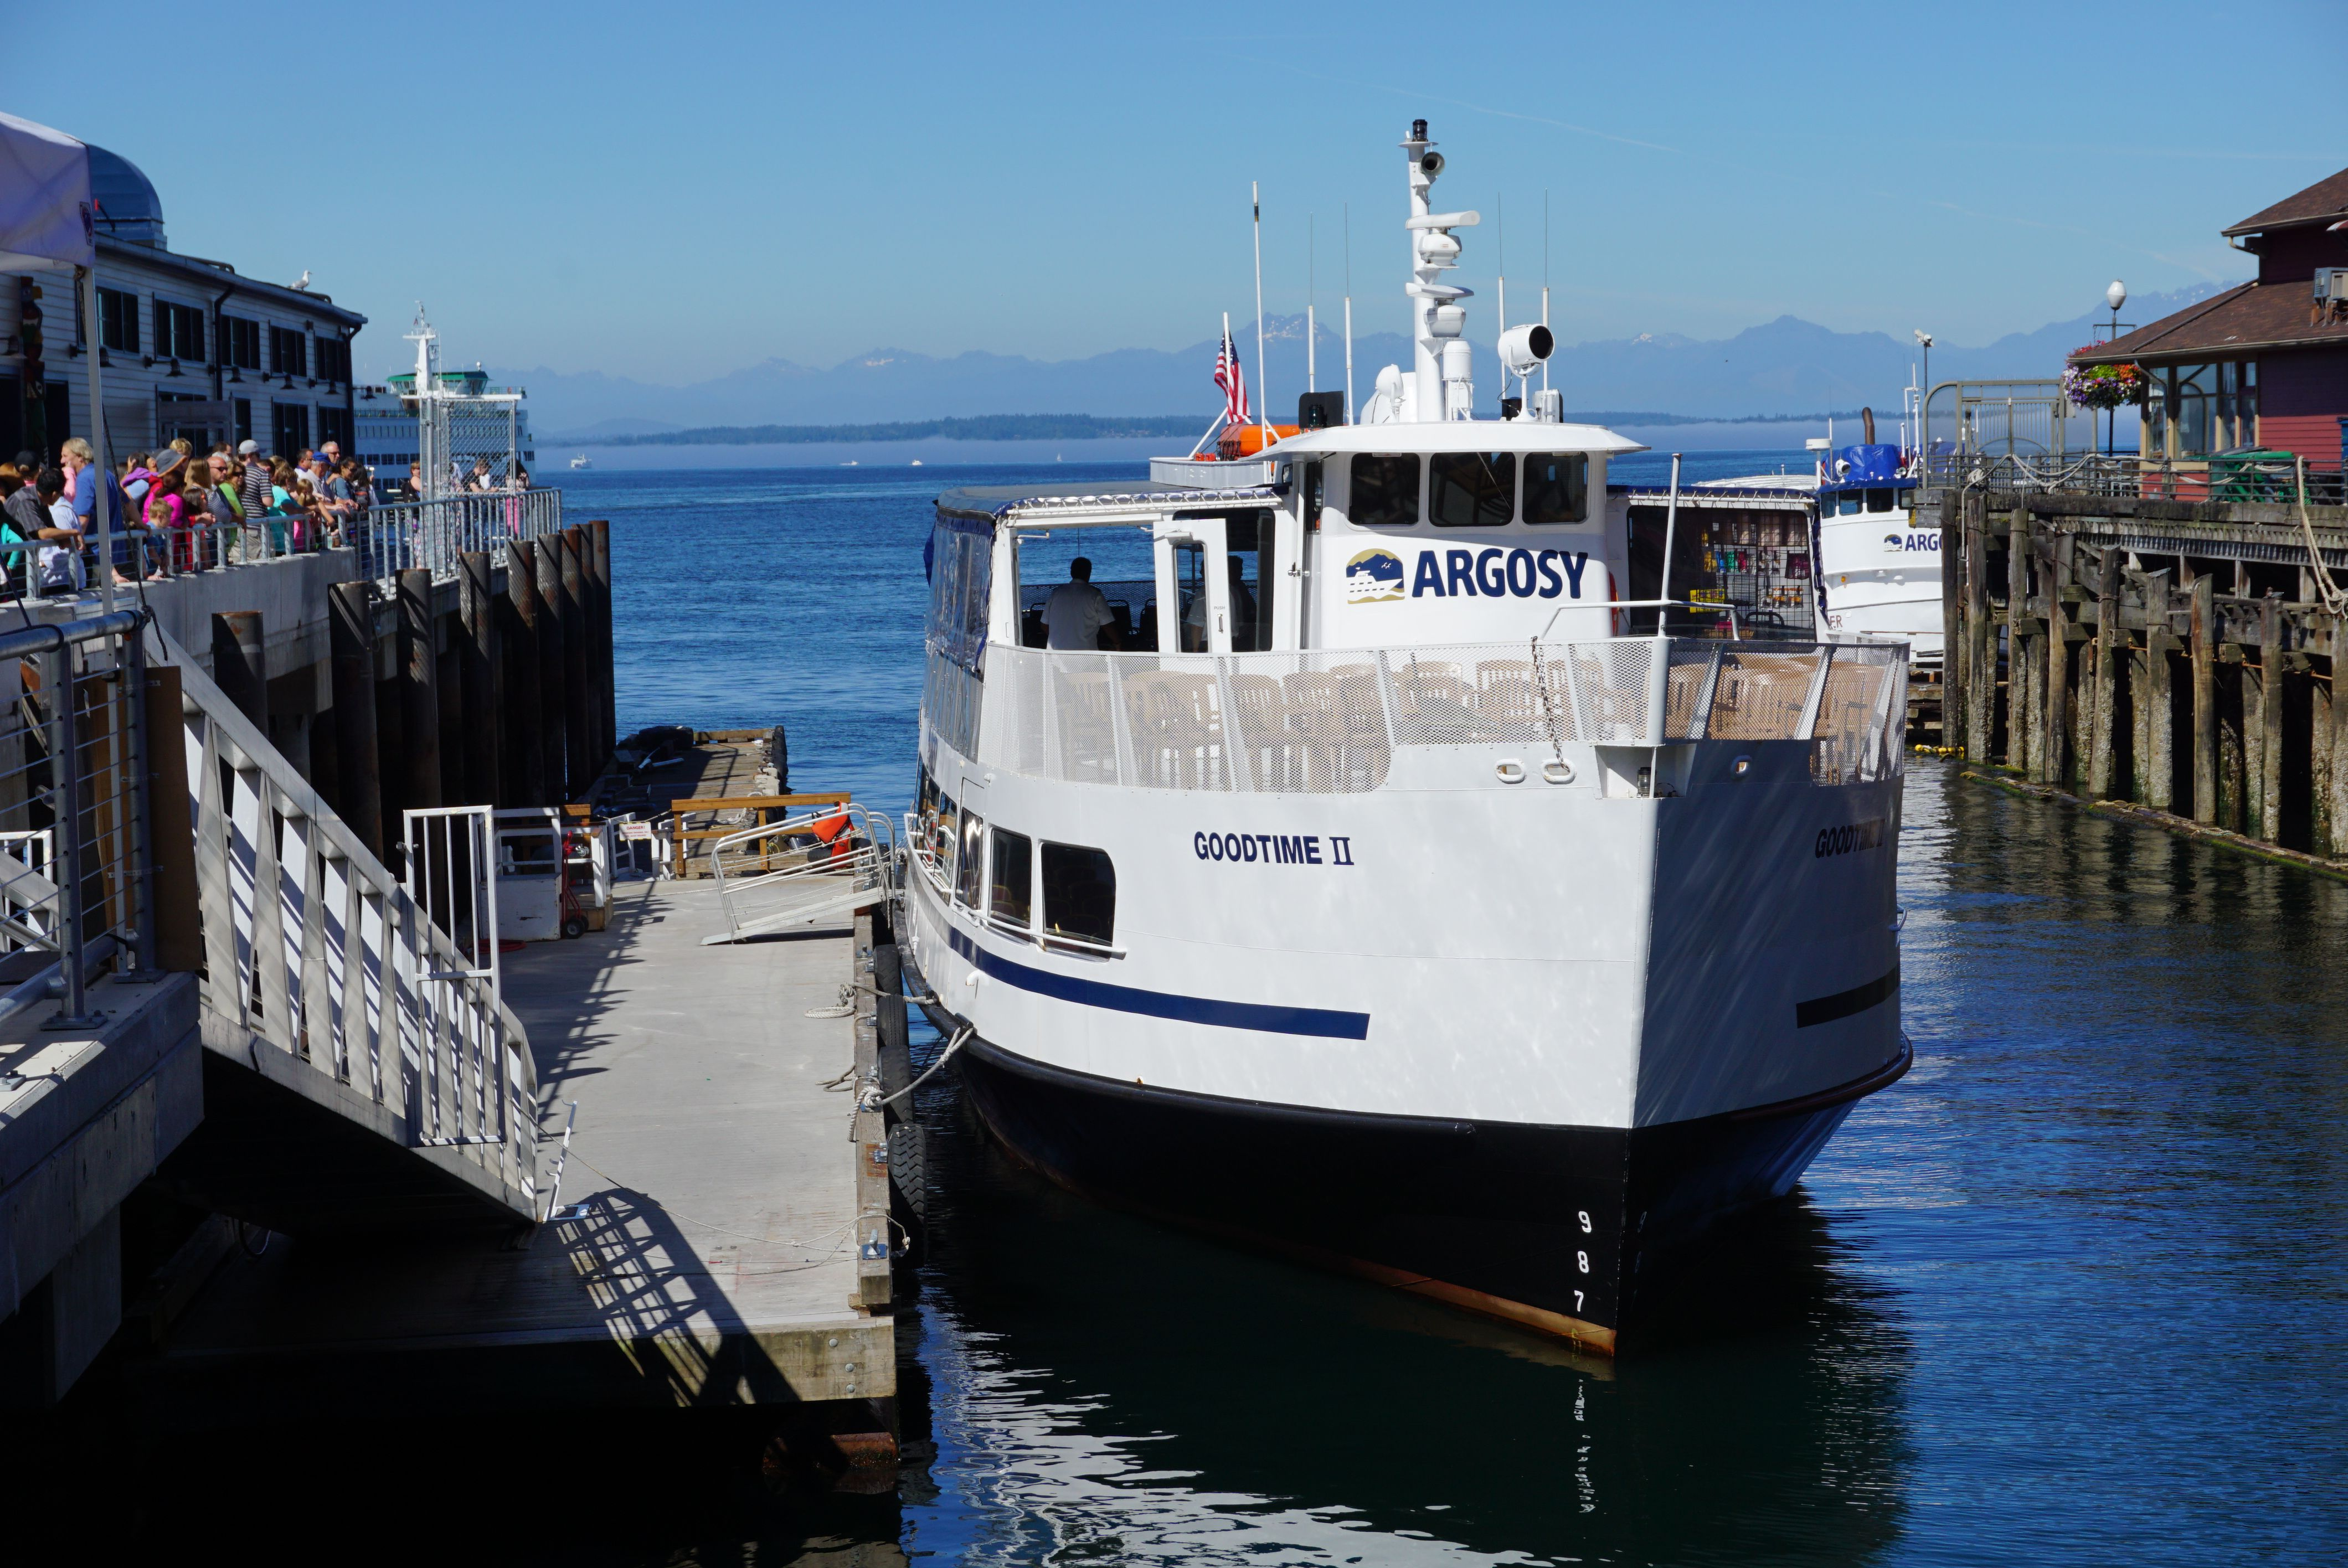 Visitors And Locals Alike Should Take An Argosy Cruise